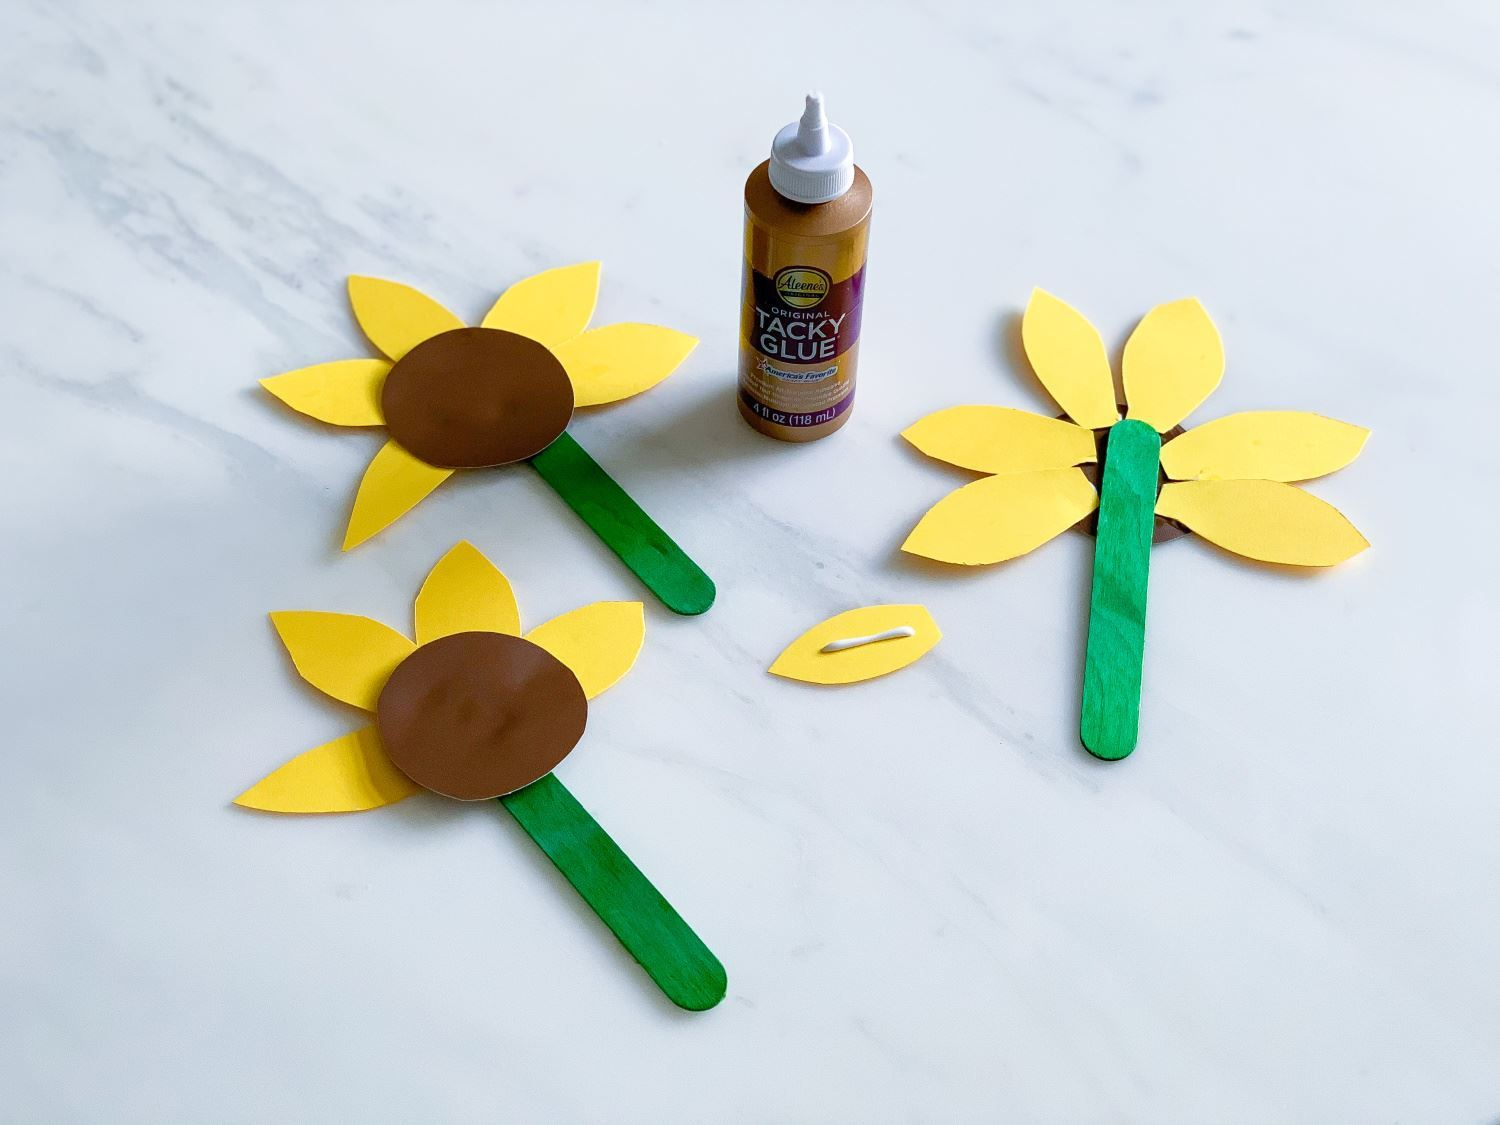 Cut out flower centers and petals and glue together